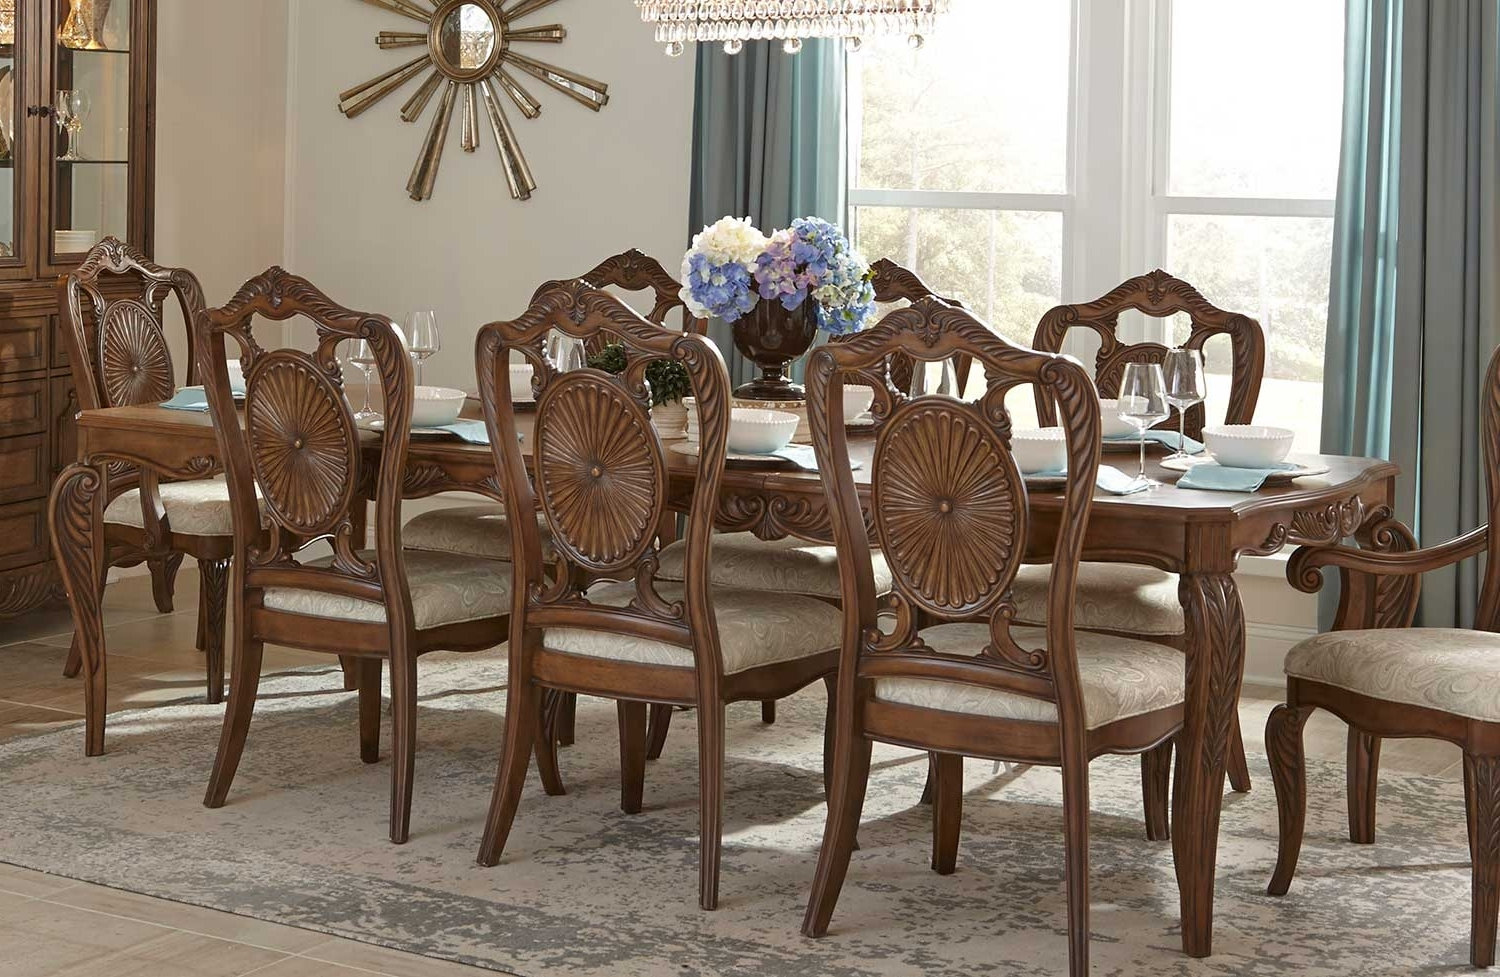 Homelegance Moorewood Park Dining Table With Leaf - Pecan 1704-108 intended for Well-liked Bale Rustic Grey Dining Tables